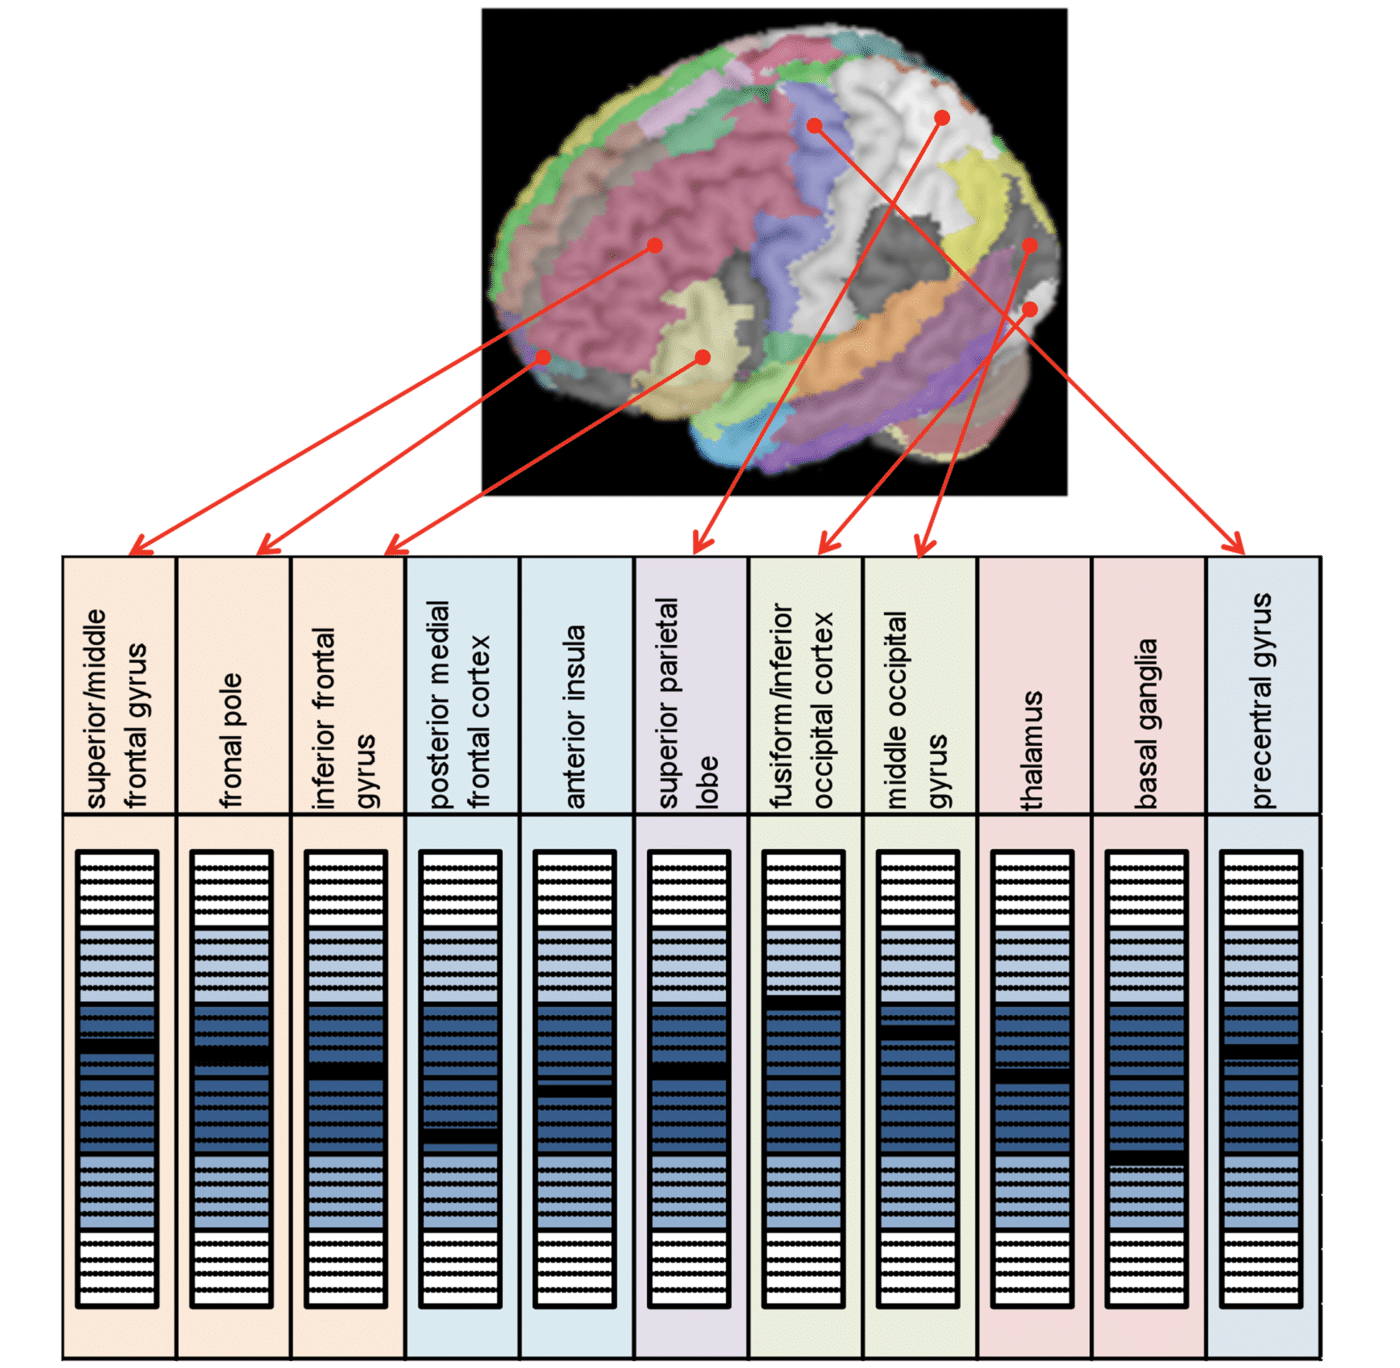 Normative Atlas for concussion neromarkers